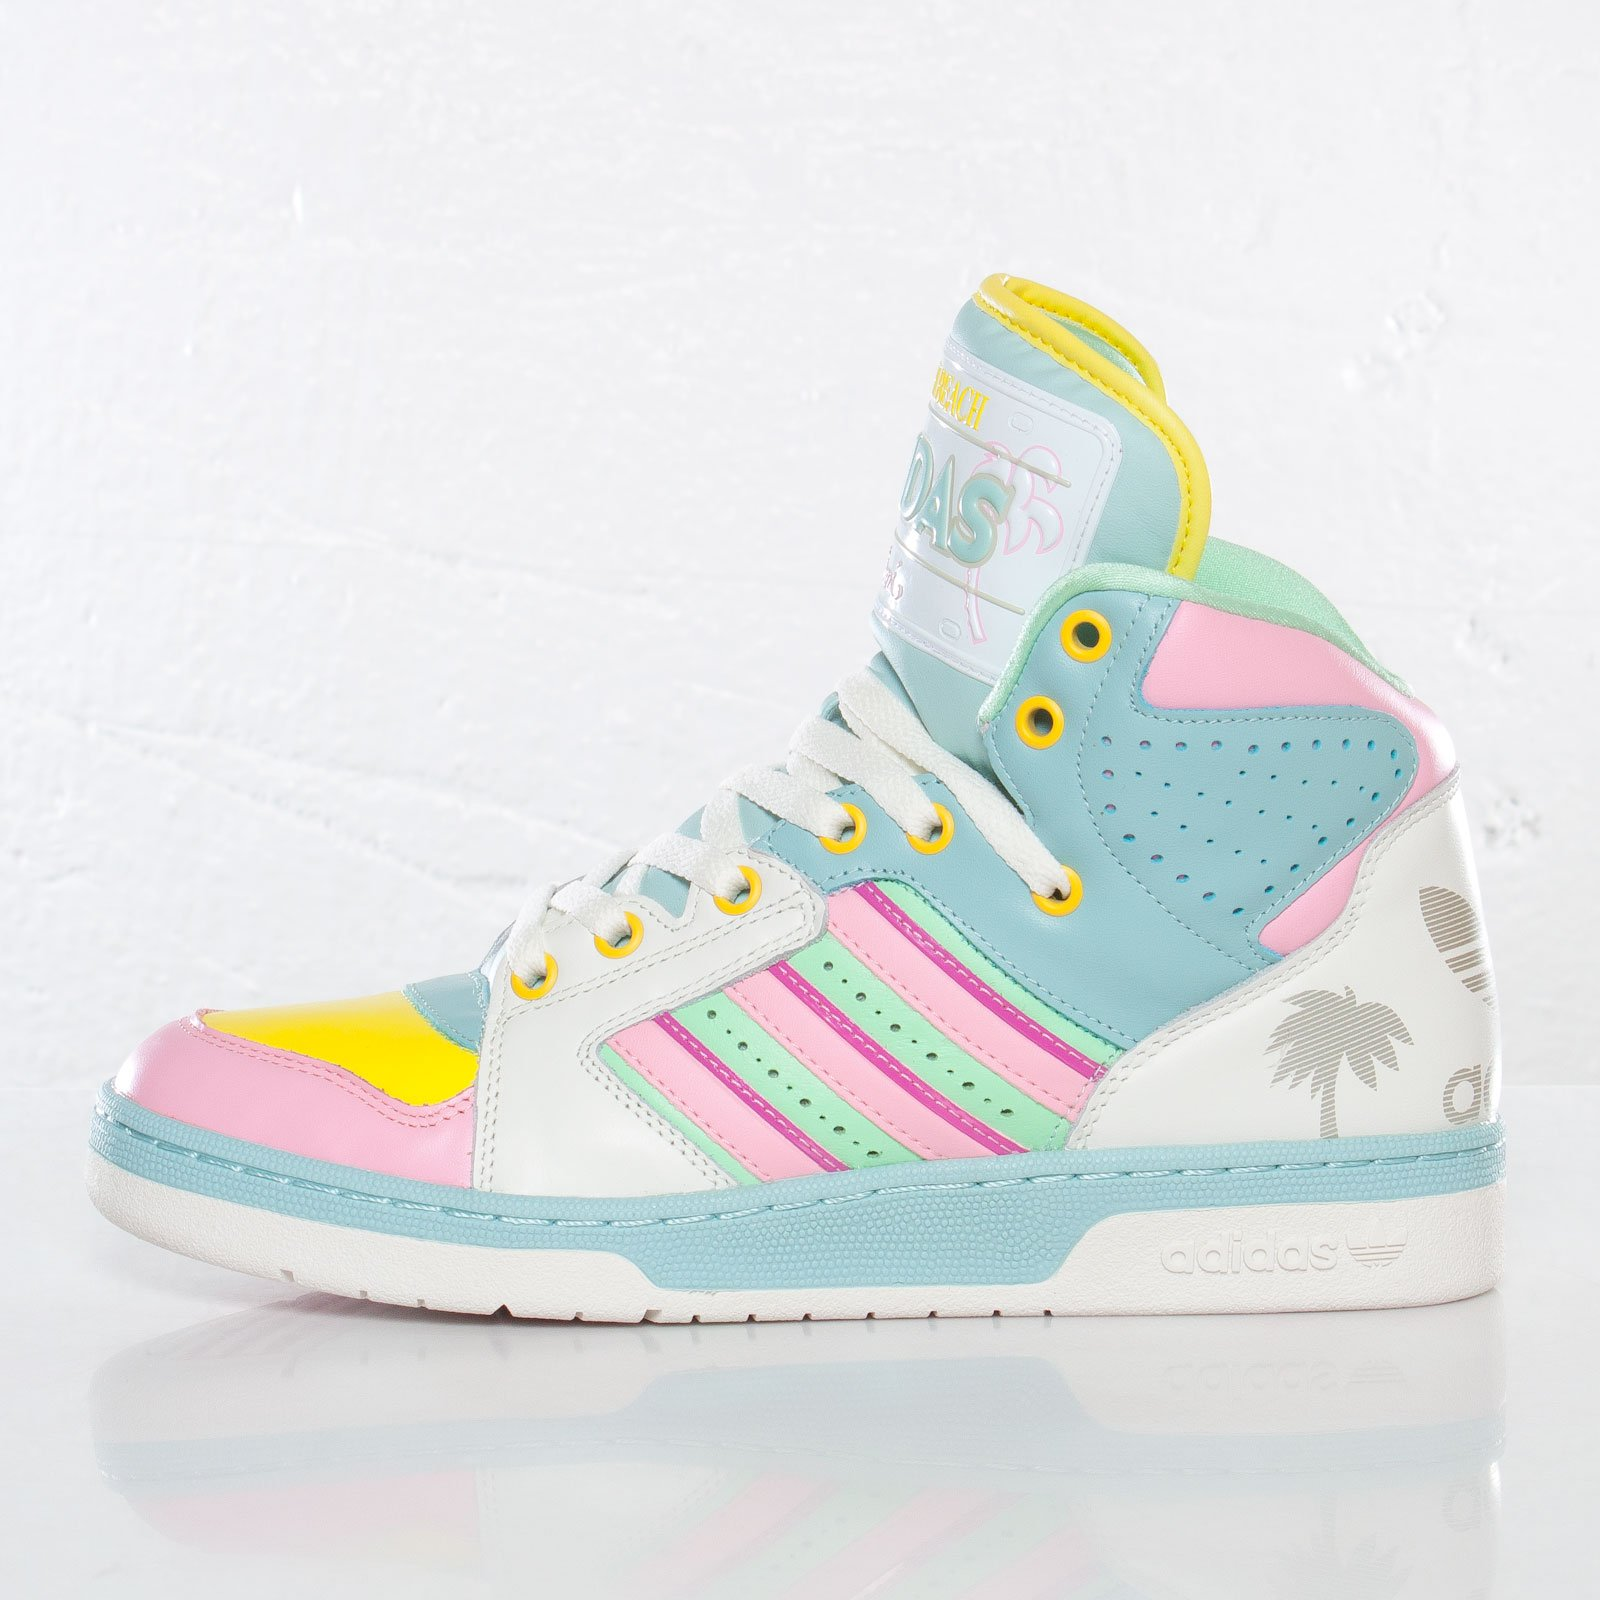 cfdd0be74f92 adidas JS License Plate Miami - G95772 - Sneakersnstuff